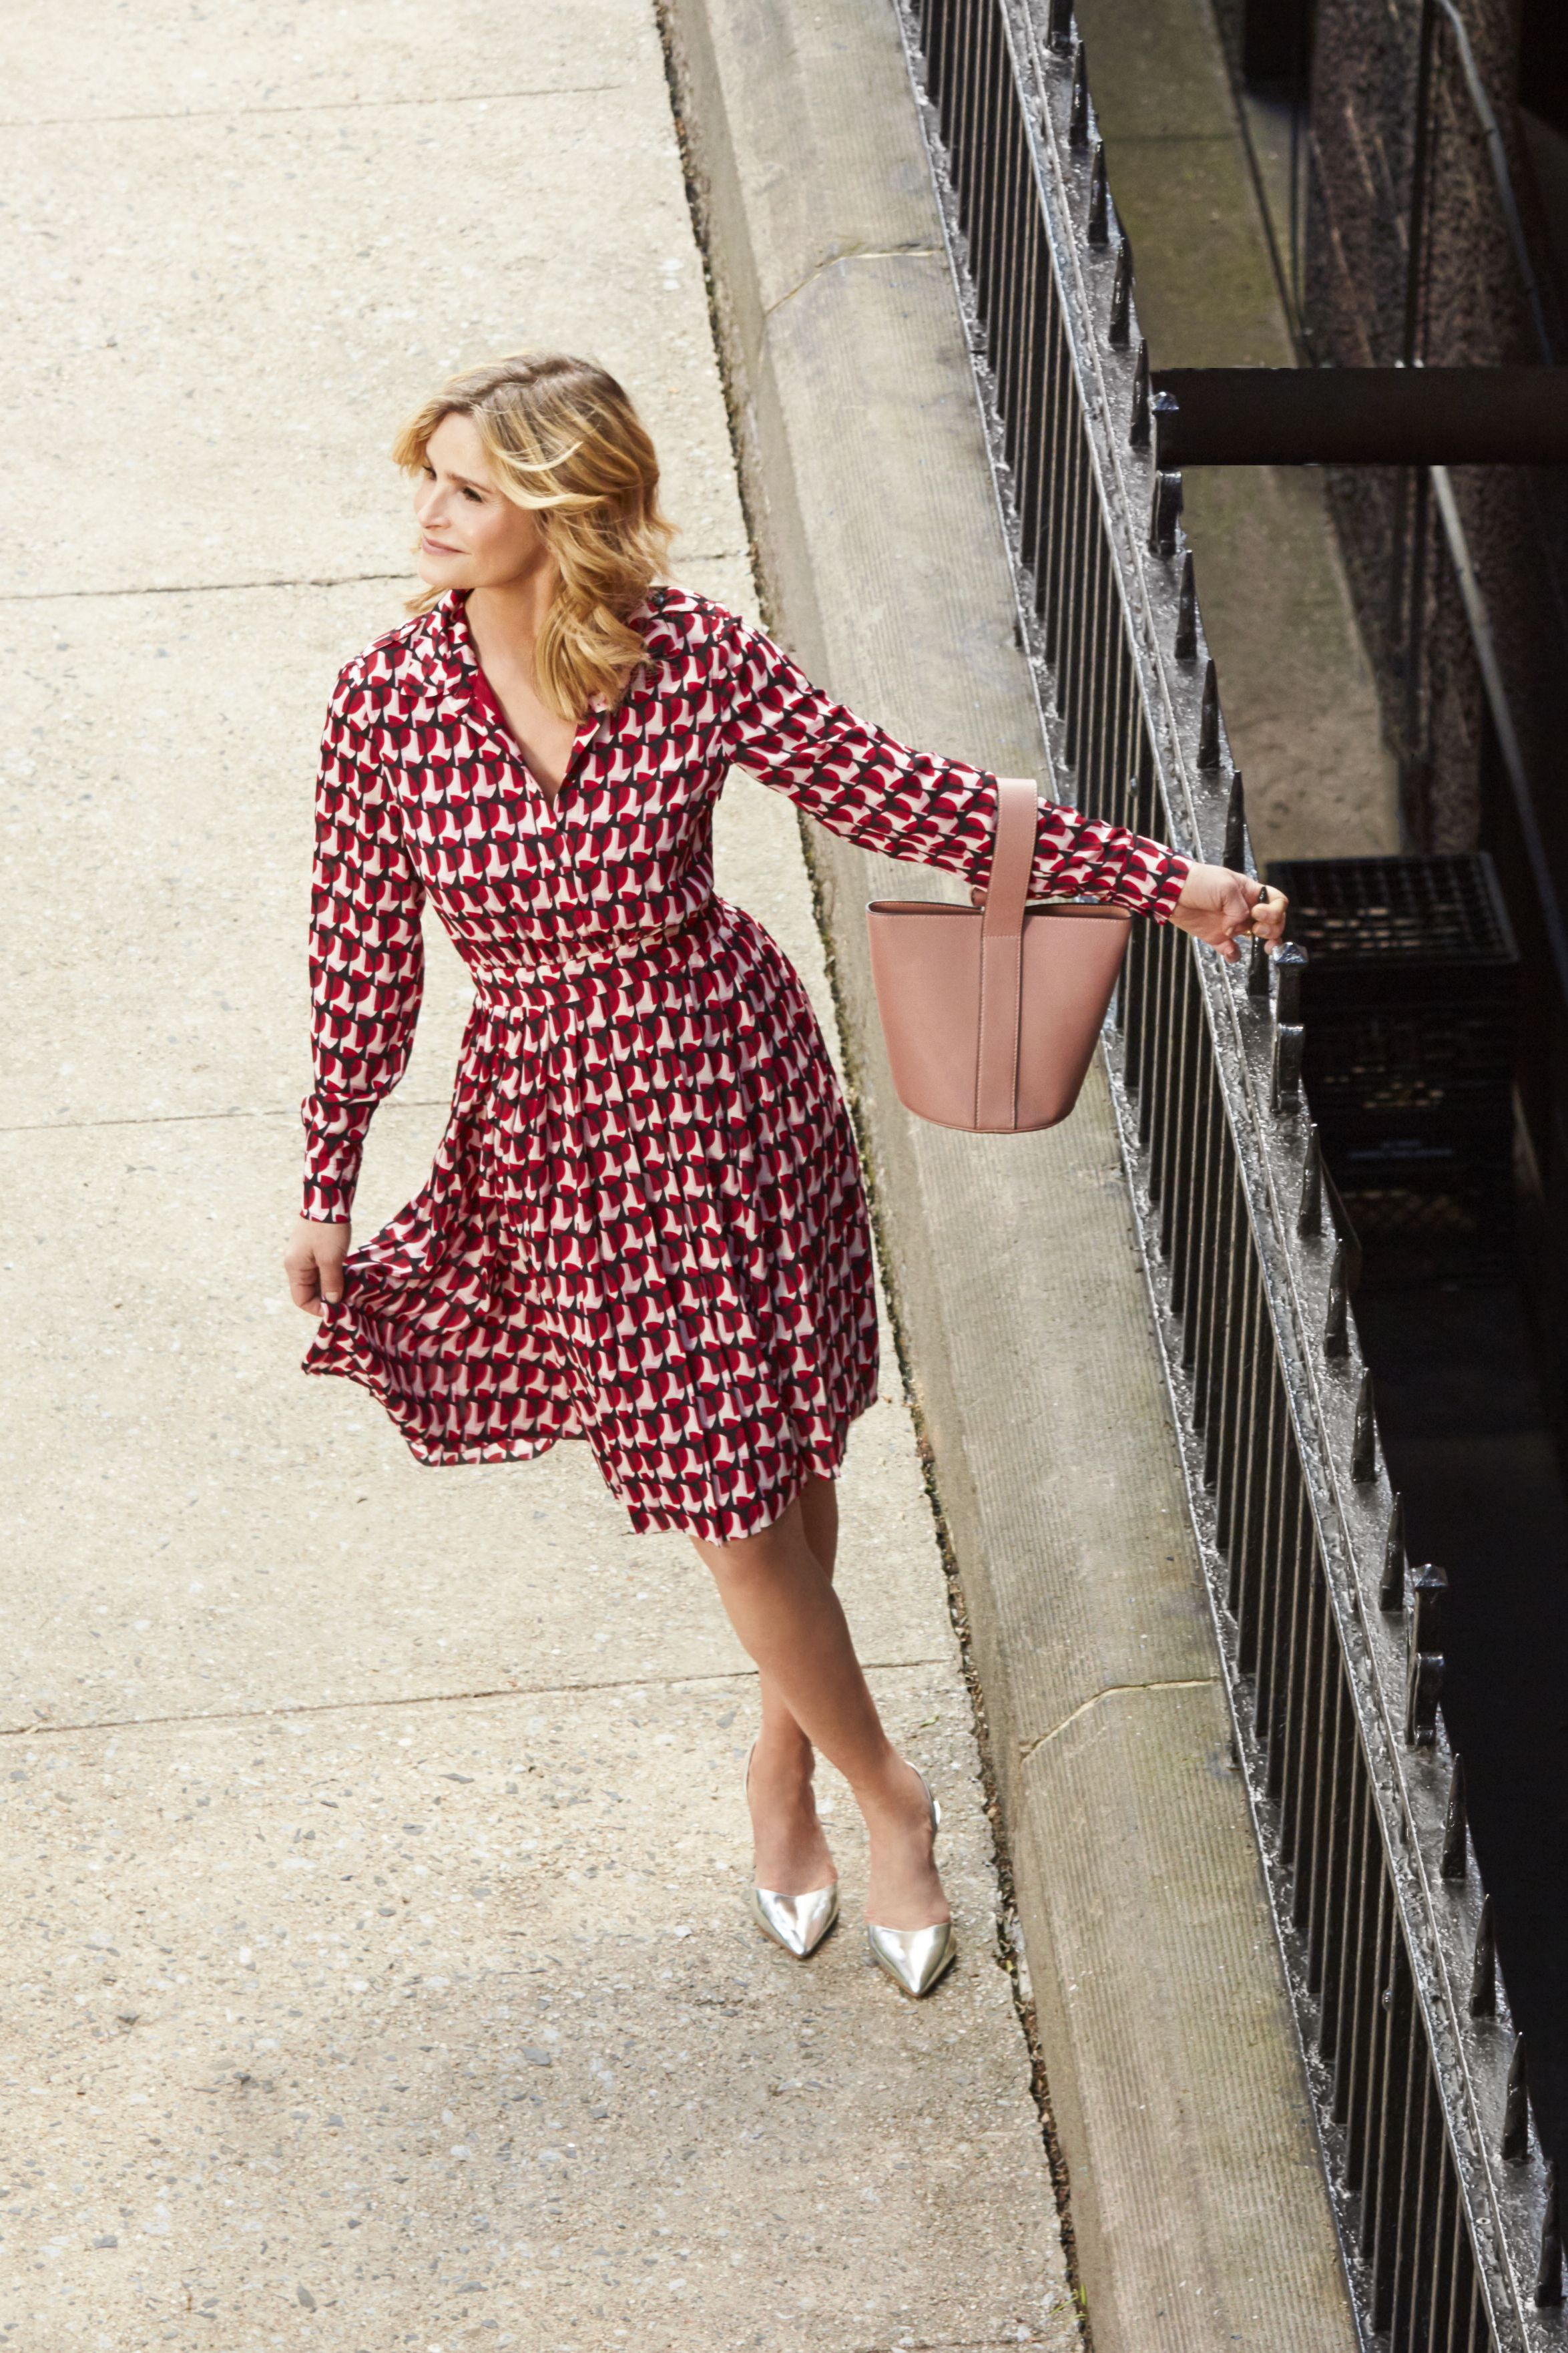 """<p>An easy breezy one in a&nbsp&#x3B;<span>bold pattern equals a showstopping&nbsp&#x3B;</span><span>outfit that requires&nbsp&#x3B;</span><span>zero (zilch, nada) thought.</span></p><p><span><em data-redactor-tag=""""em"""" data-verified=""""redactor""""><strong data-redactor-tag=""""strong"""" data-verified=""""redactor"""">Dress, </strong>$398, <a href=""""http://www.katespade.com"""" target=""""_blank"""" data-tracking-id=""""recirc-text-link"""">katespade.com</a>.<strong data-redactor-tag=""""strong"""" data-verified=""""redactor""""> Bag, </strong>$49, <a href=""""http://www.charleskeith.com"""" target=""""_blank"""" data-tracking-id=""""recirc-text-link"""">charleskeith.com</a>. <strong data-redactor-tag=""""strong"""" data-verified=""""redactor"""">Pumps,</strong> $98, <a href=""""http://vincecamuto.com"""" target=""""_blank"""" data-tracking-id=""""recirc-text-link"""">vincecamuto.com</a>.&nbsp&#x3B;</em></span></p><p><span><strong data-redactor-tag=""""strong"""" data-verified=""""redactor"""">TRAVEL TIP:&nbsp&#x3B;</strong></span><span>With its original&nbsp&#x3B;</span><span>Gothic architecture,&nbsp&#x3B;</span><span>private garden and&nbsp&#x3B;</span><span>eclectic rooms, the&nbsp&#x3B;</span><span><a href=""""http://www.thehighlinehotel.com"""" target=""""_blank"""" data-tracking-id=""""recirc-text-link"""">High Line Hotel</a> is as&nbsp&#x3B;</span><span>beautiful on the inside&nbsp&#x3B;</span><span>as it is on the outside.</span></p>"""